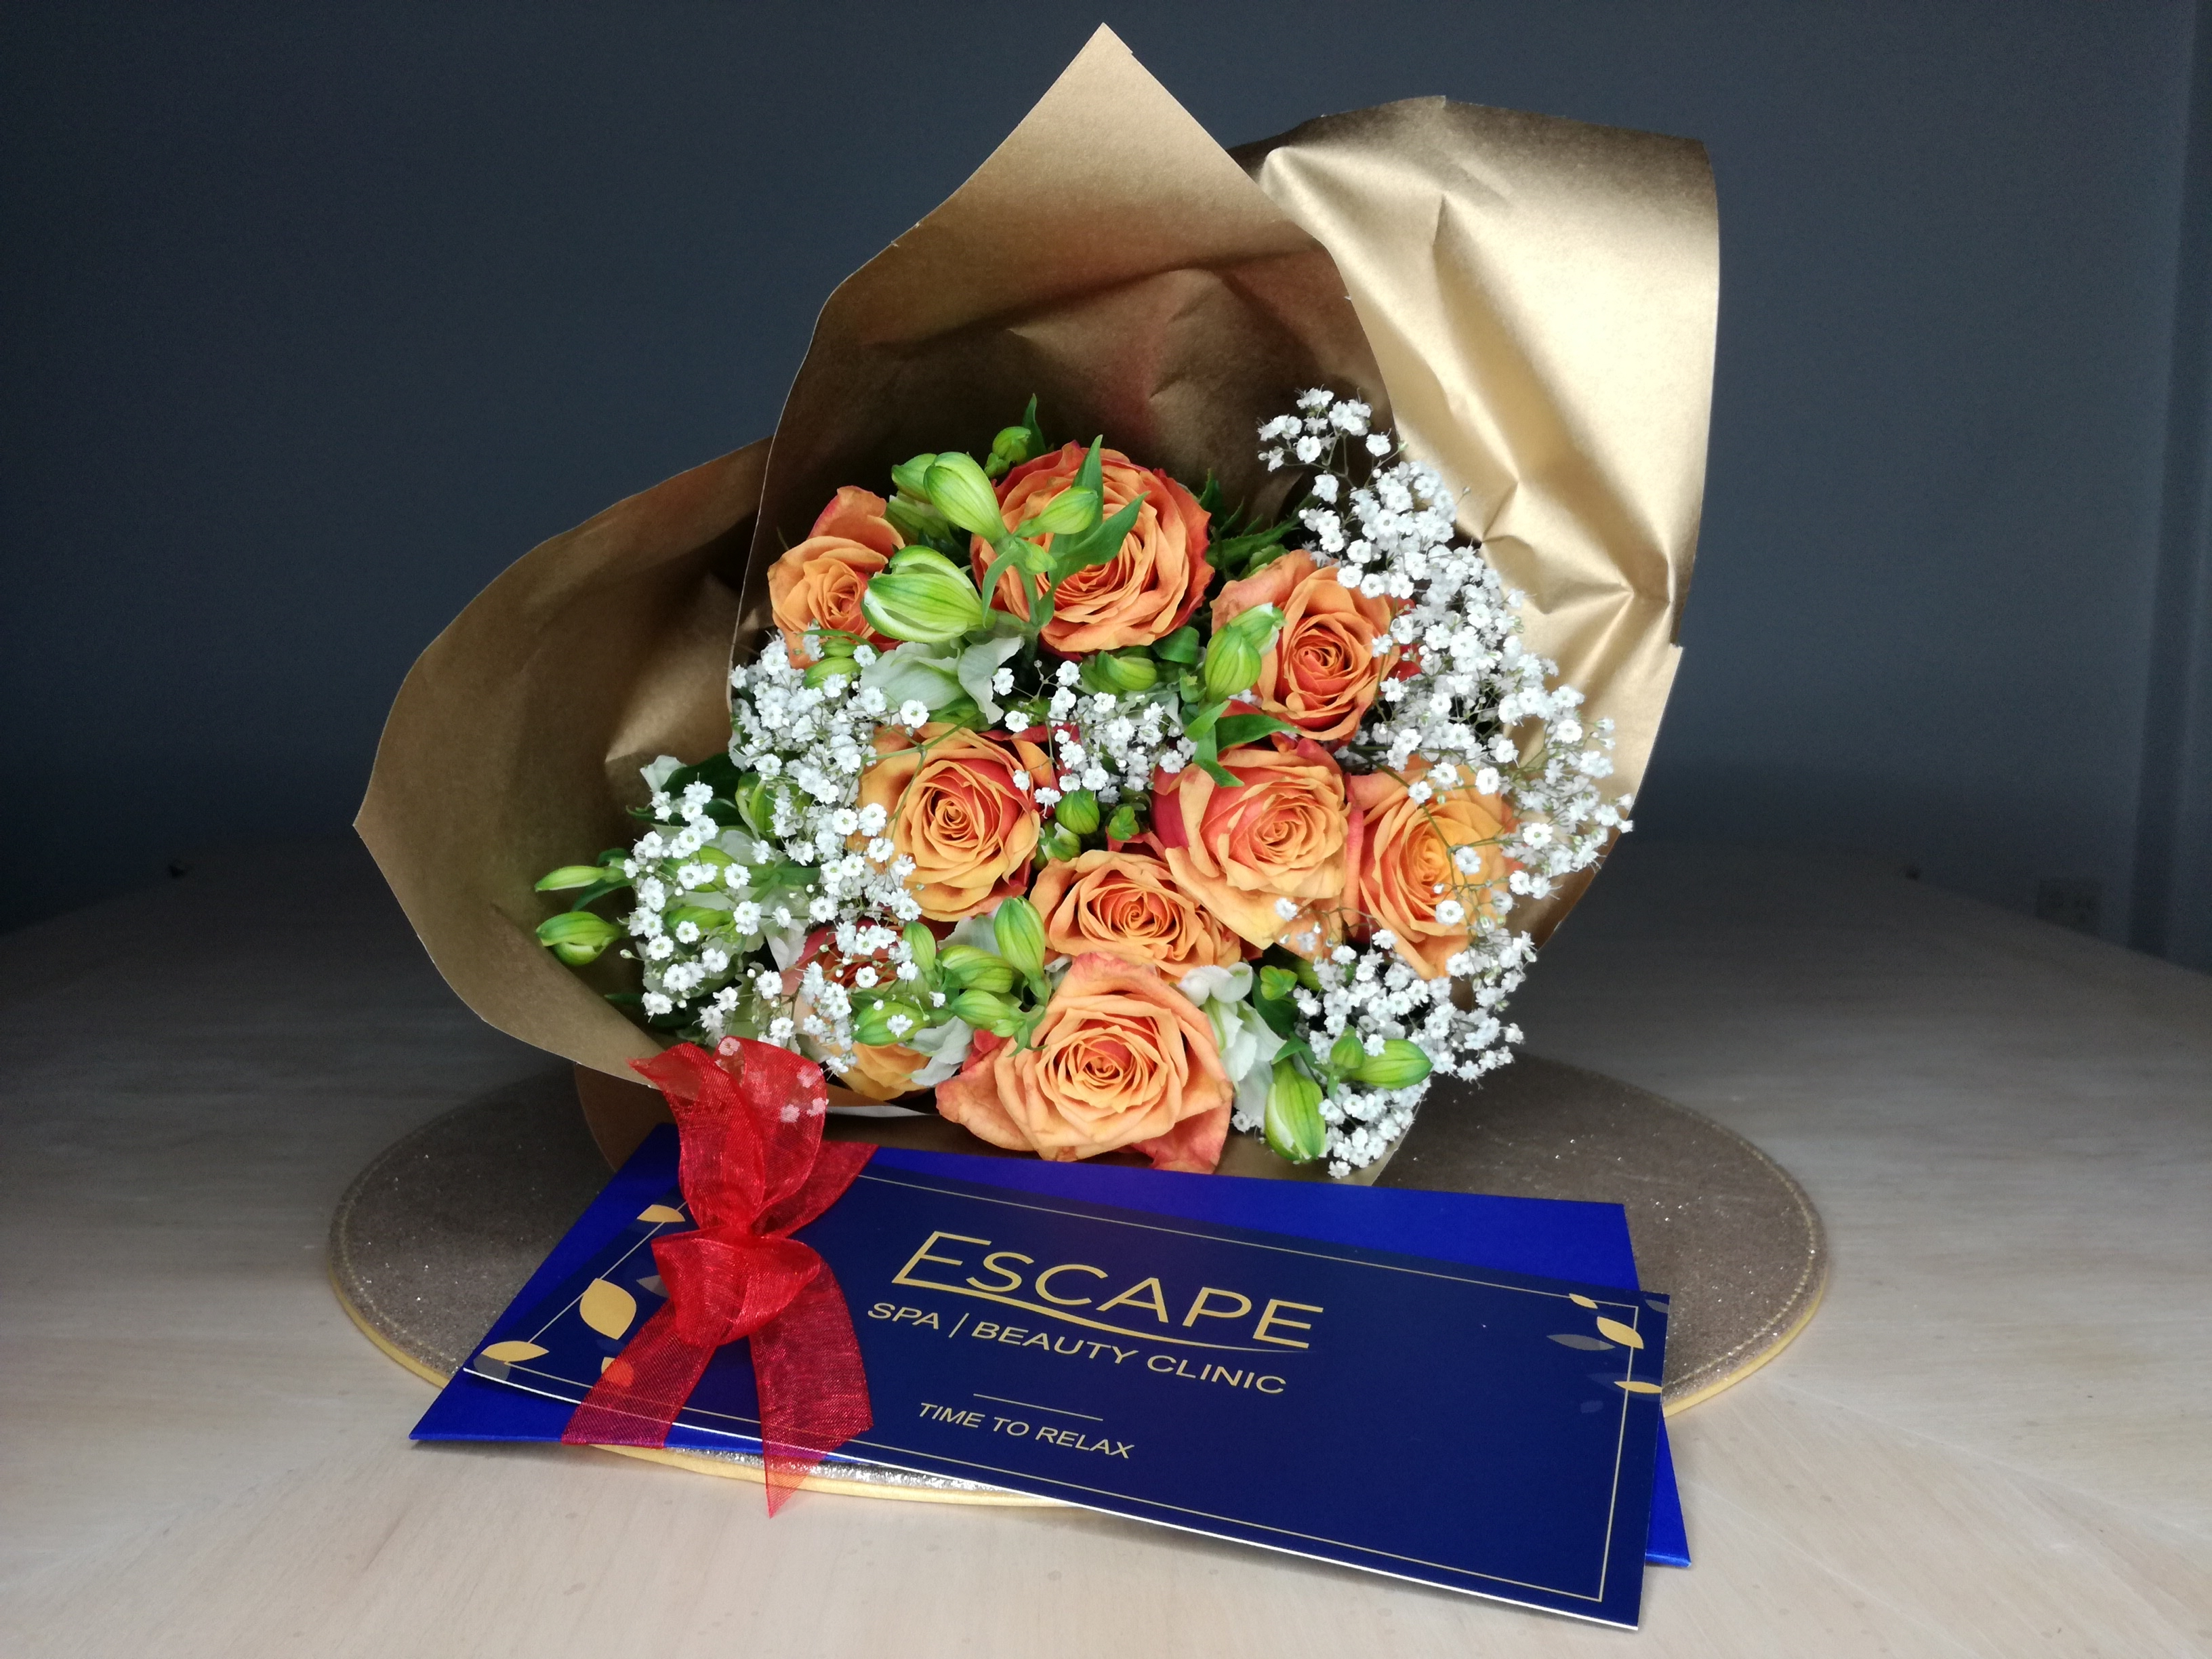 Your Escape Spa | Beauty Clinic, we have beautiful Gift Vouchers for all our treatments. photo 0